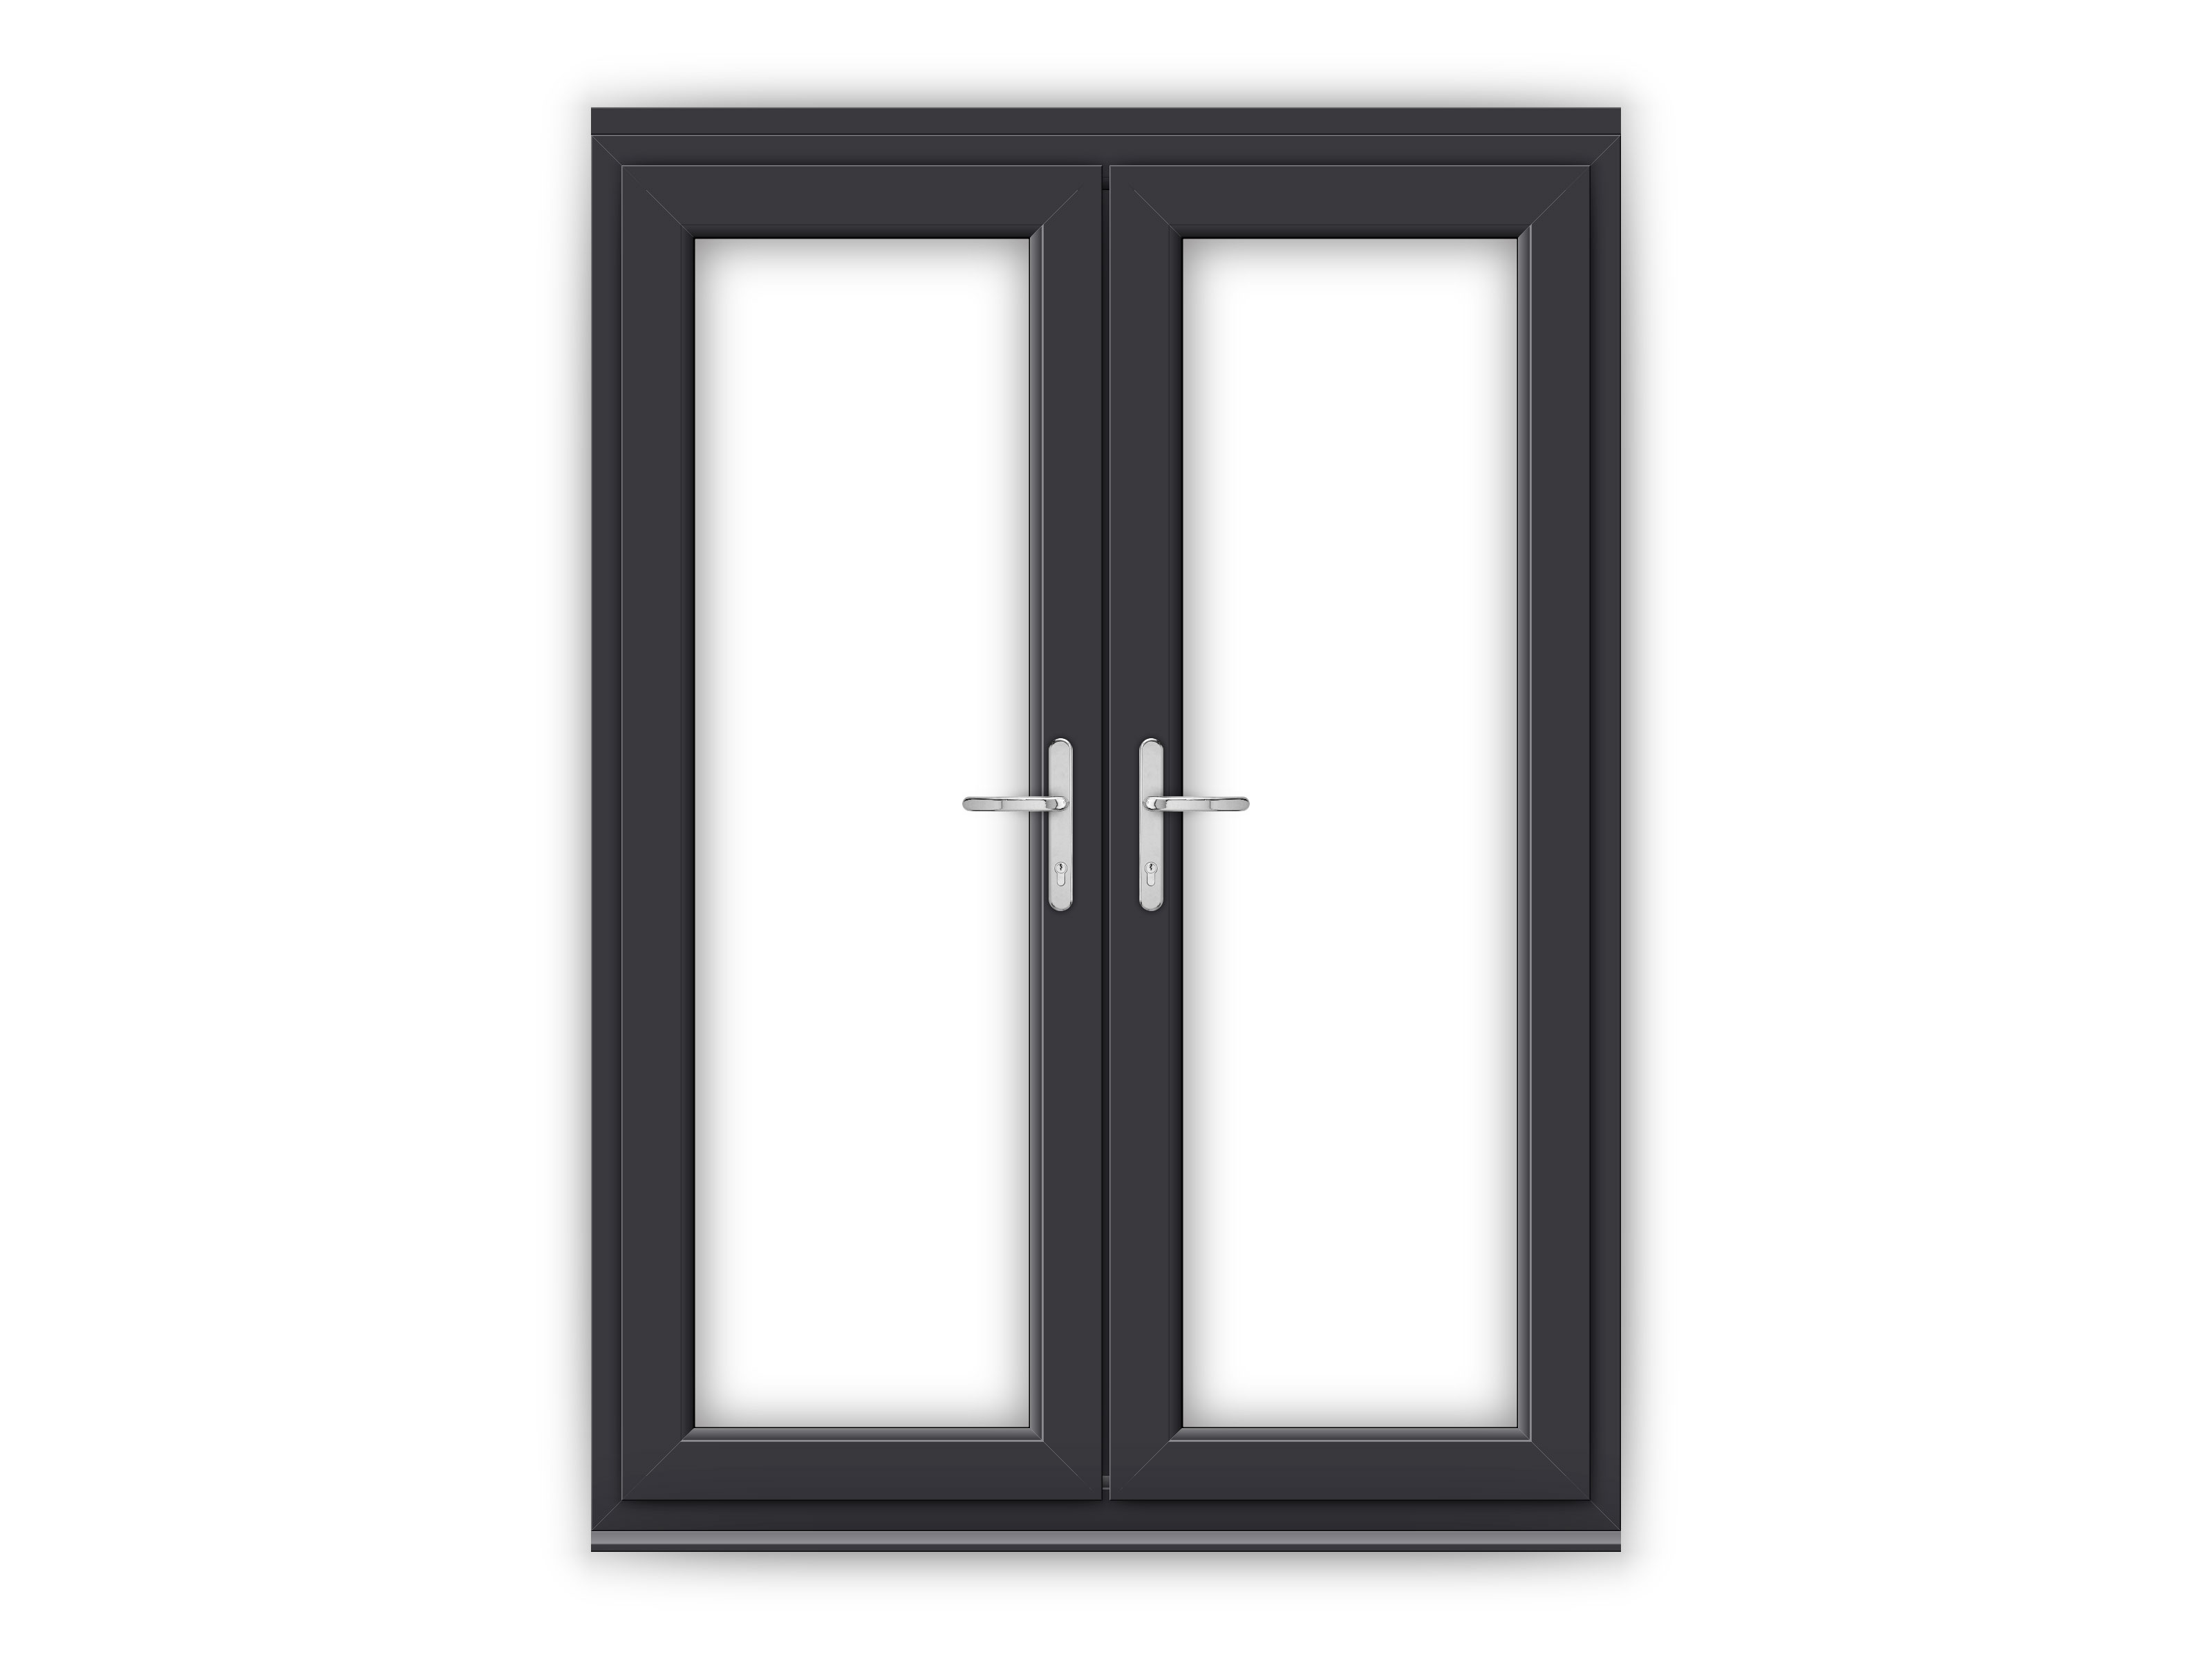 5ft anthracite grey upvc french doors flying doors for Upvc french doors 1790 x 2090mm